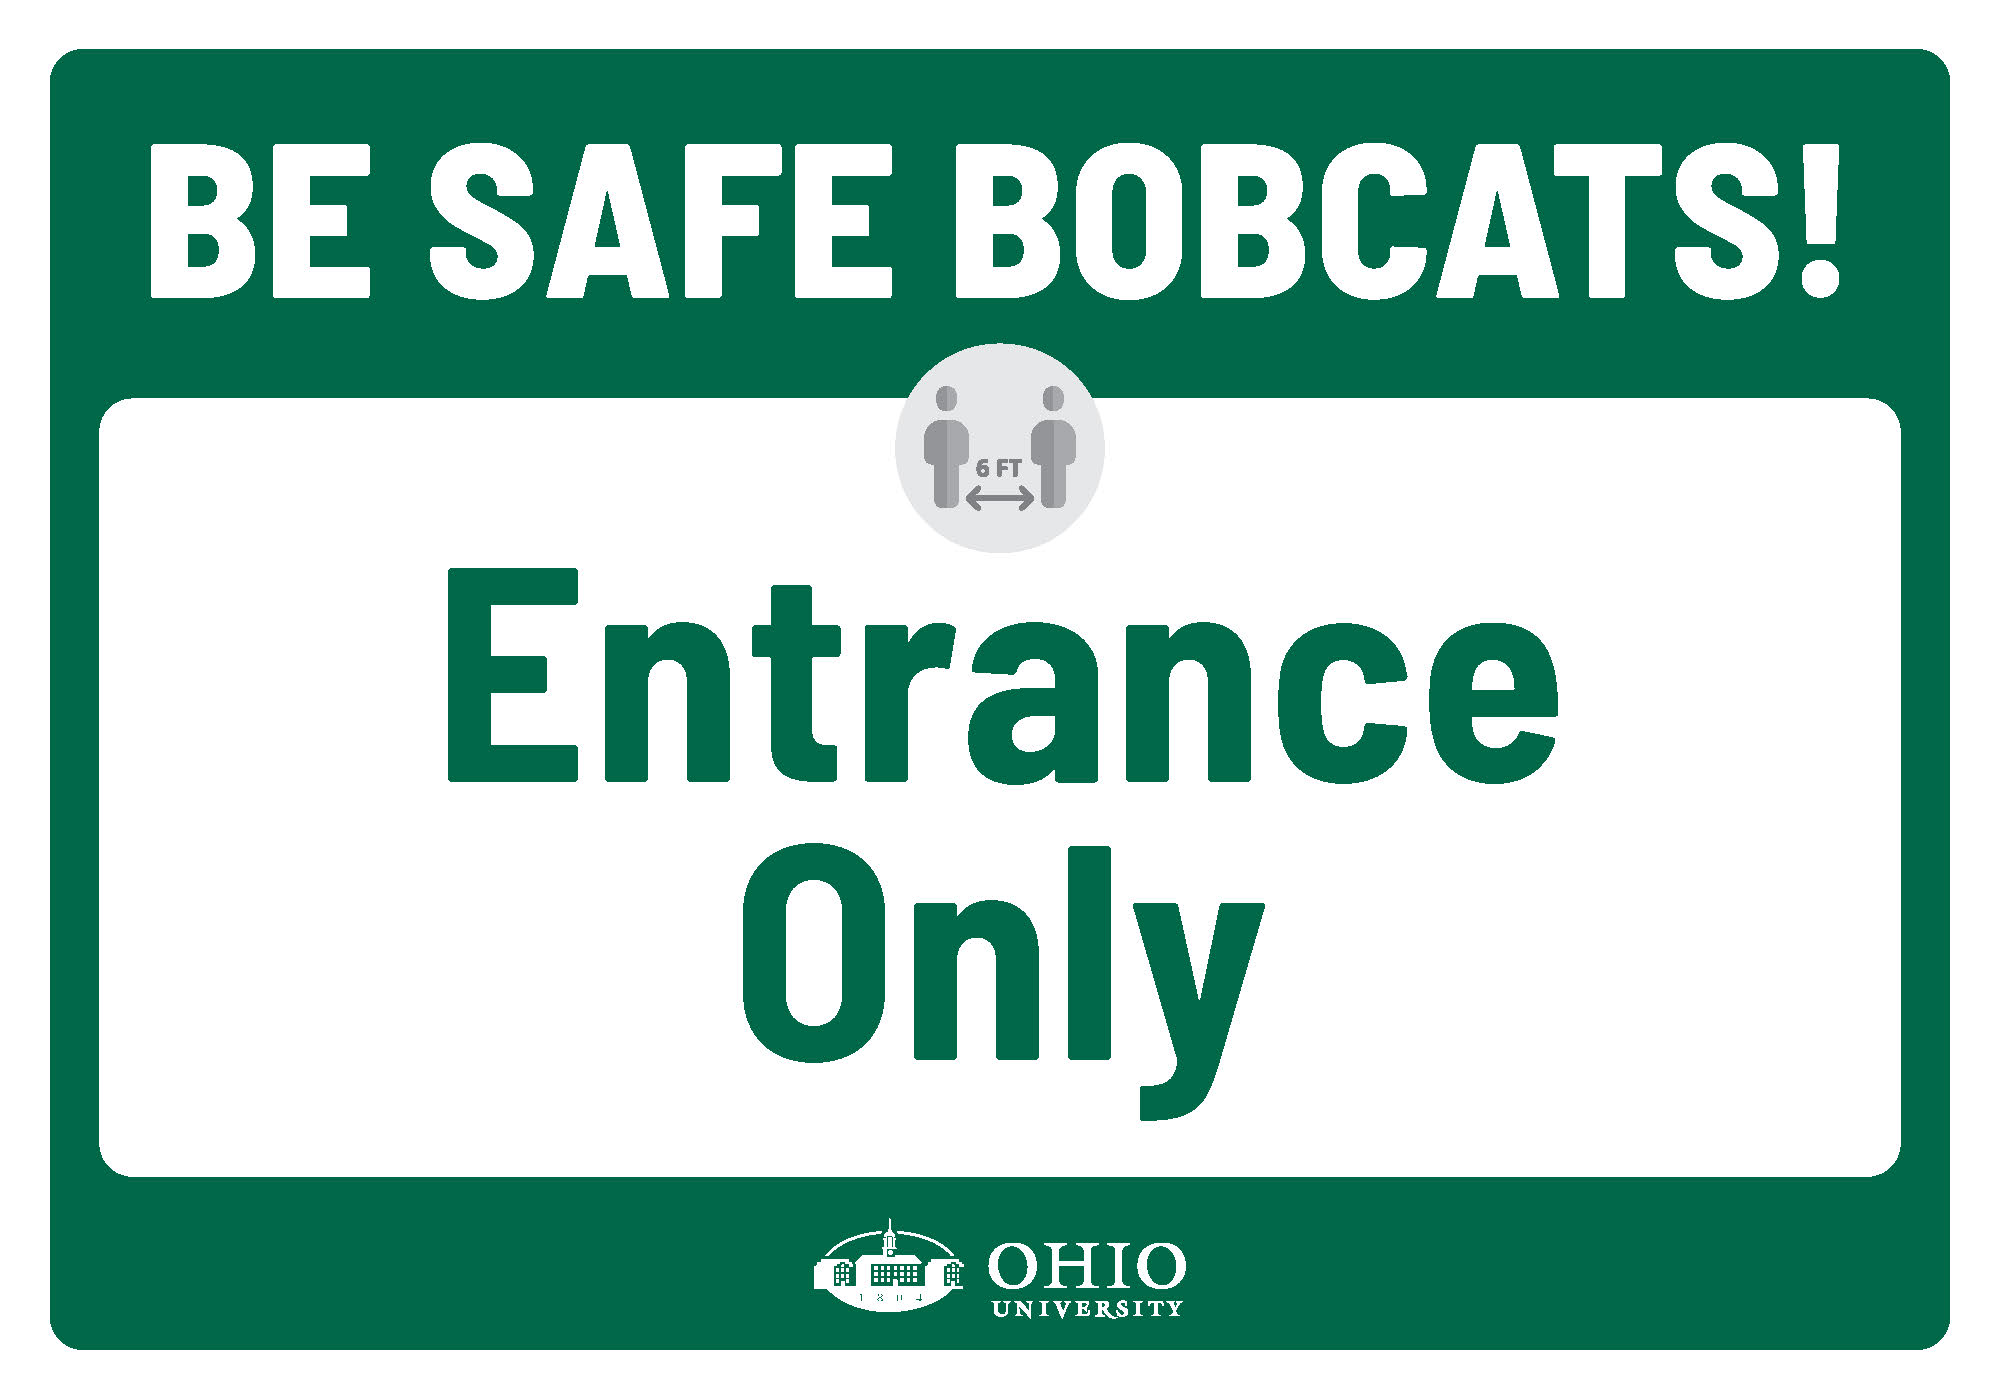 Sign that says: Be safe Bobcats! Entrance only.